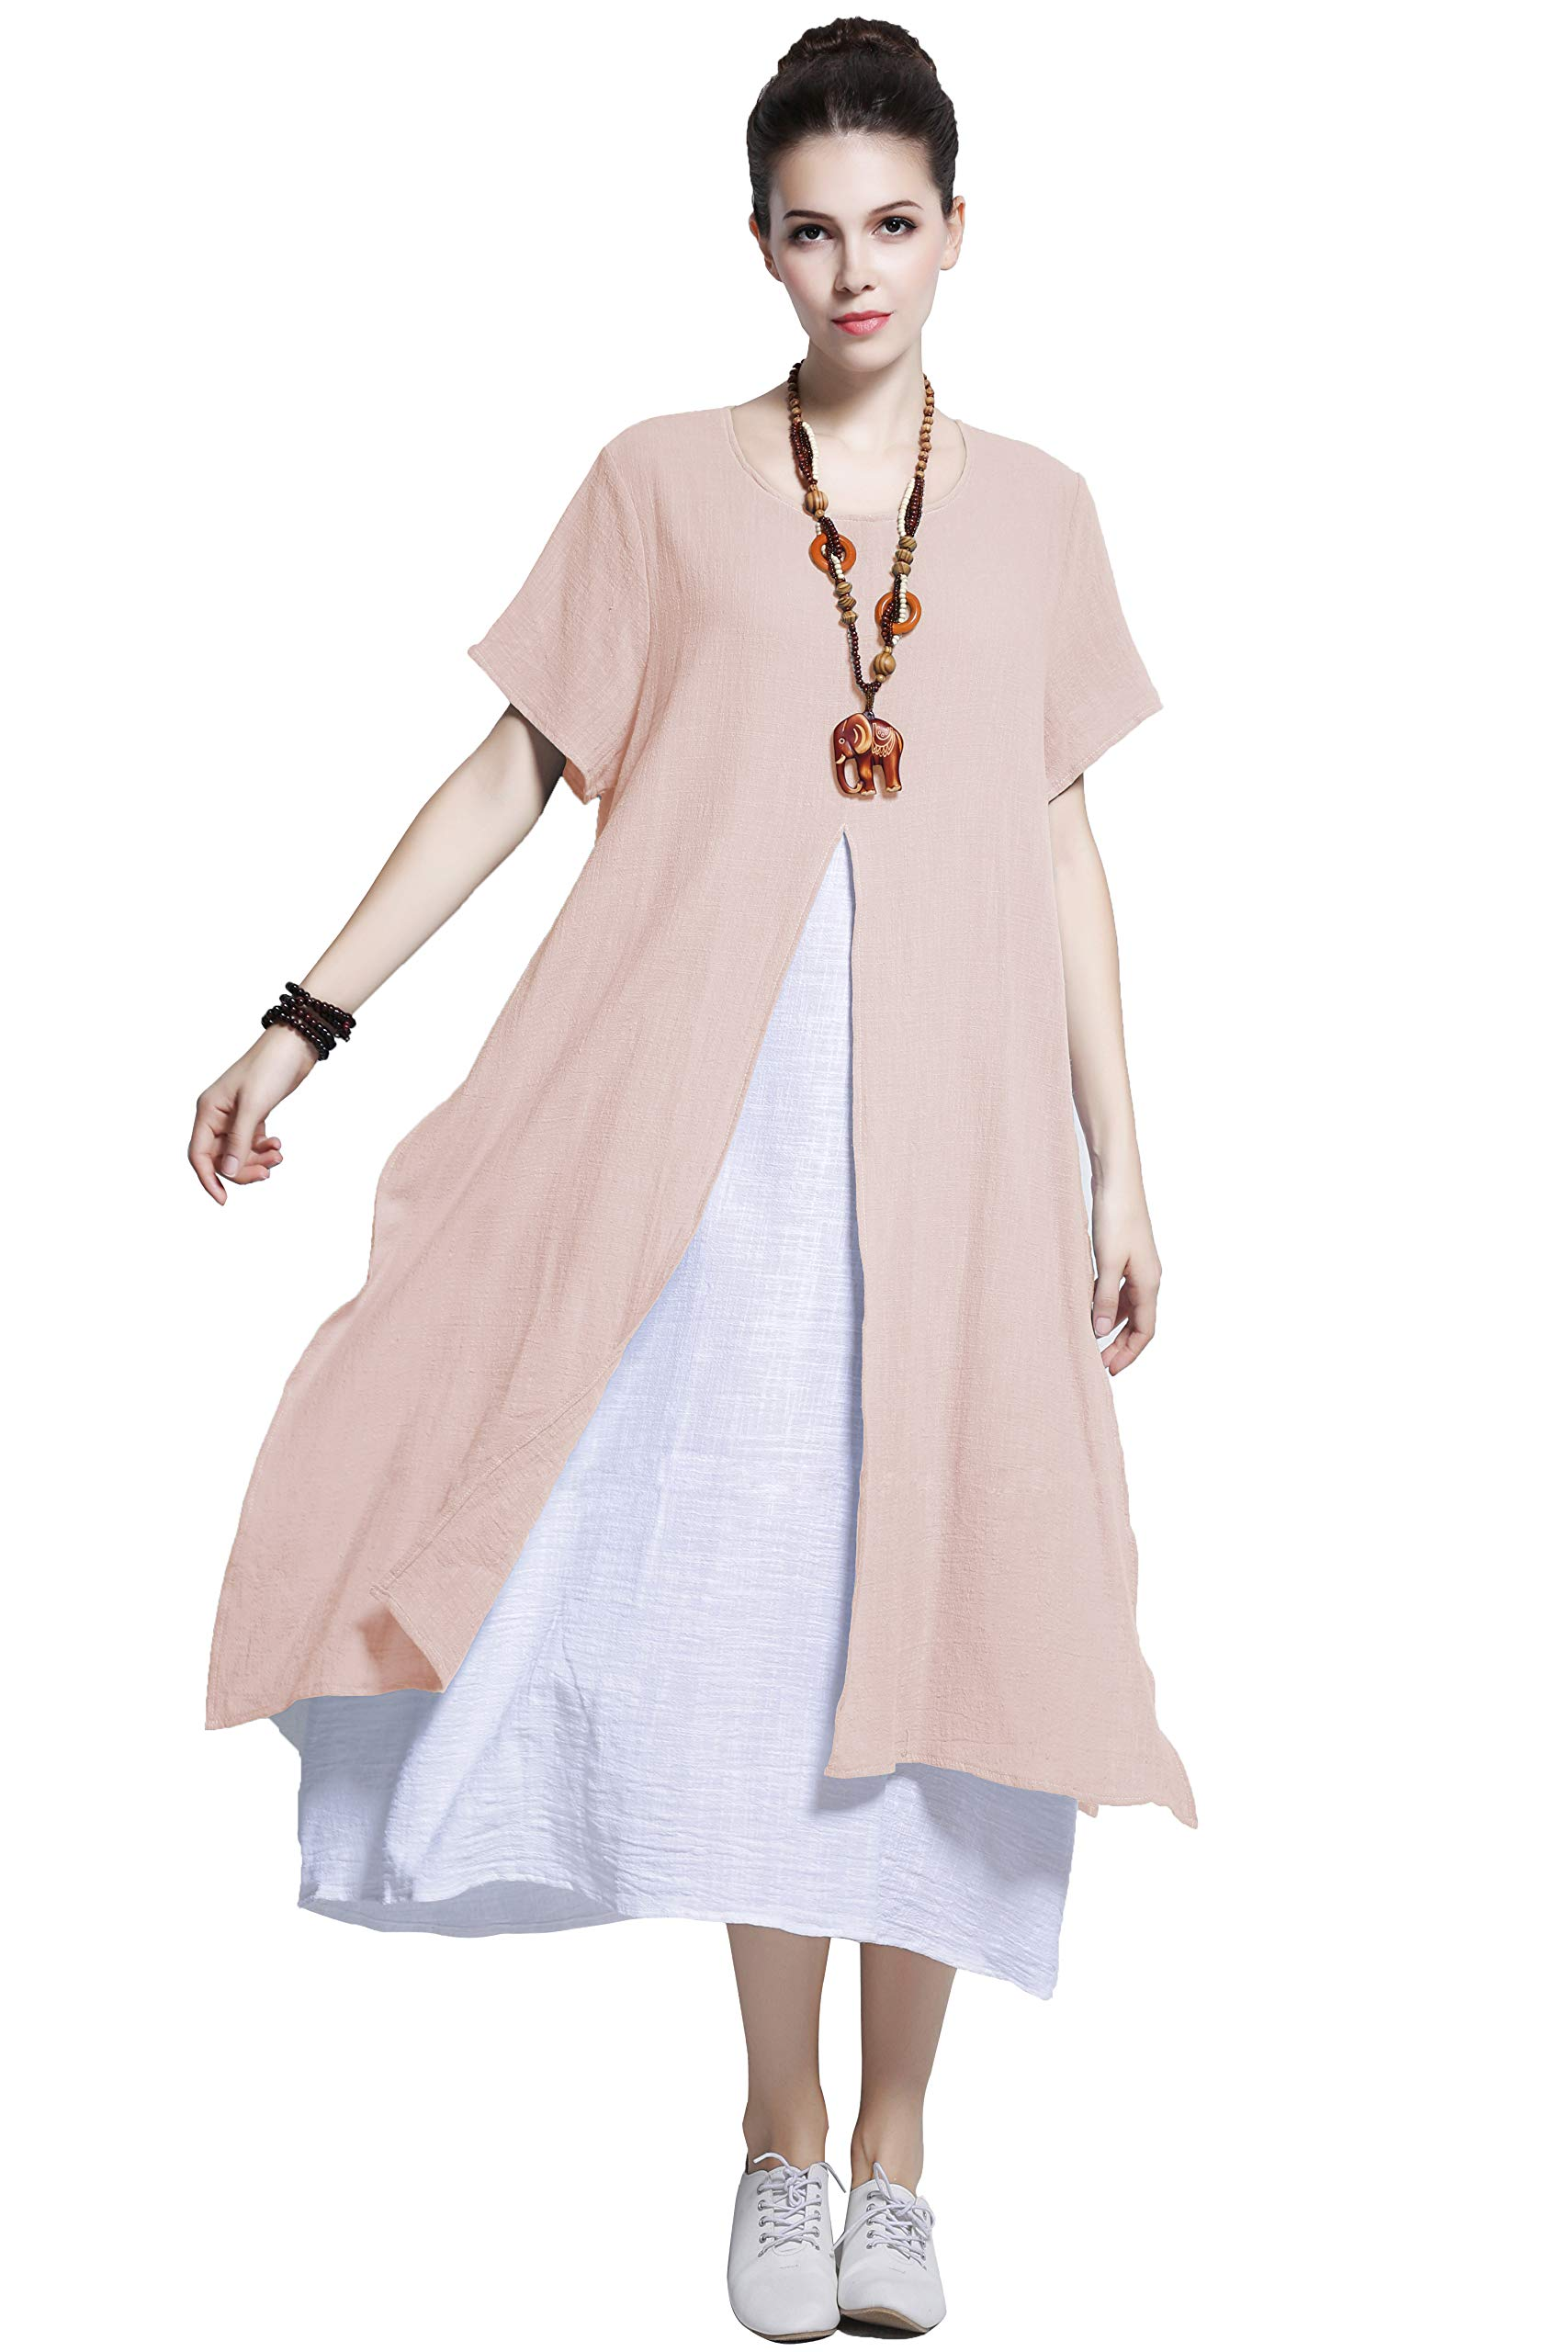 Anysize Fake-Two-Piece Soft Linen Cotton Dress Spring Summer Plus Size Clothing Y110